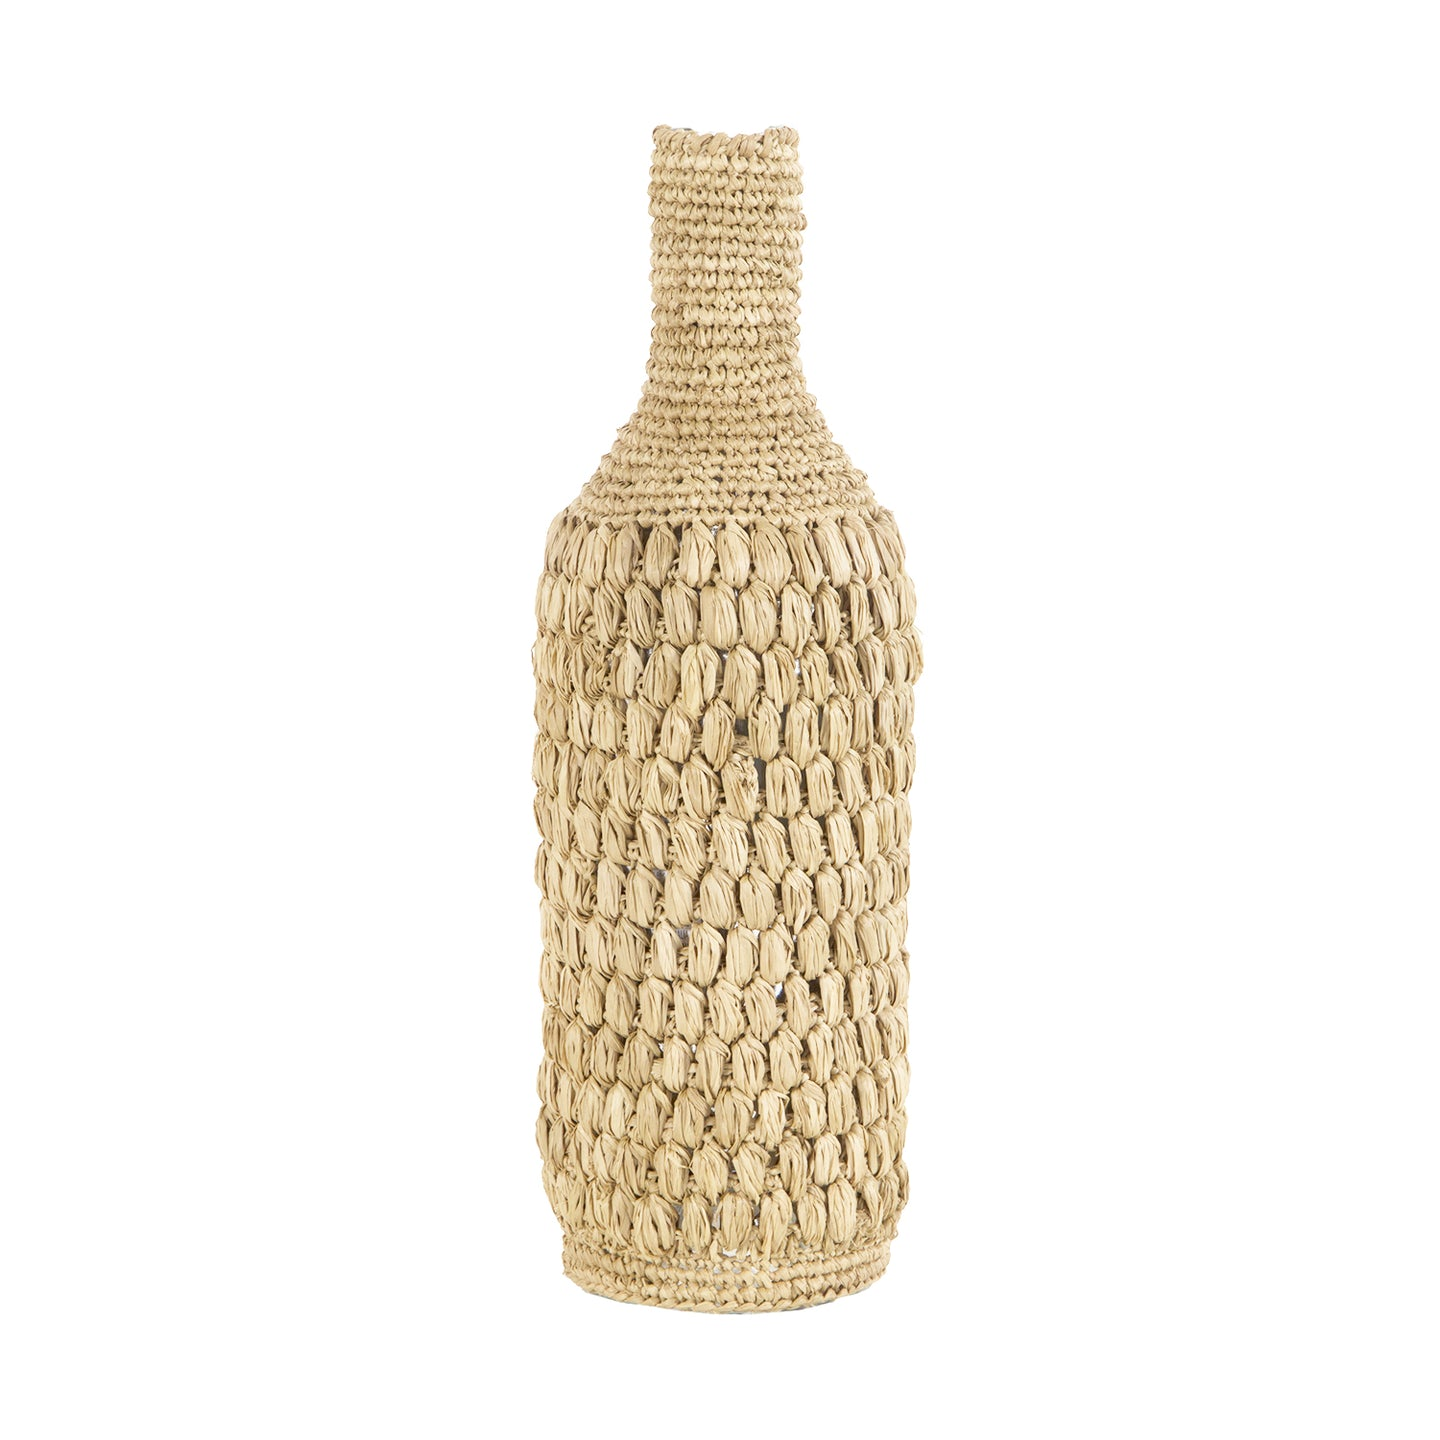 BOTTLE COVER IRENE STICH NATURAL.jpg